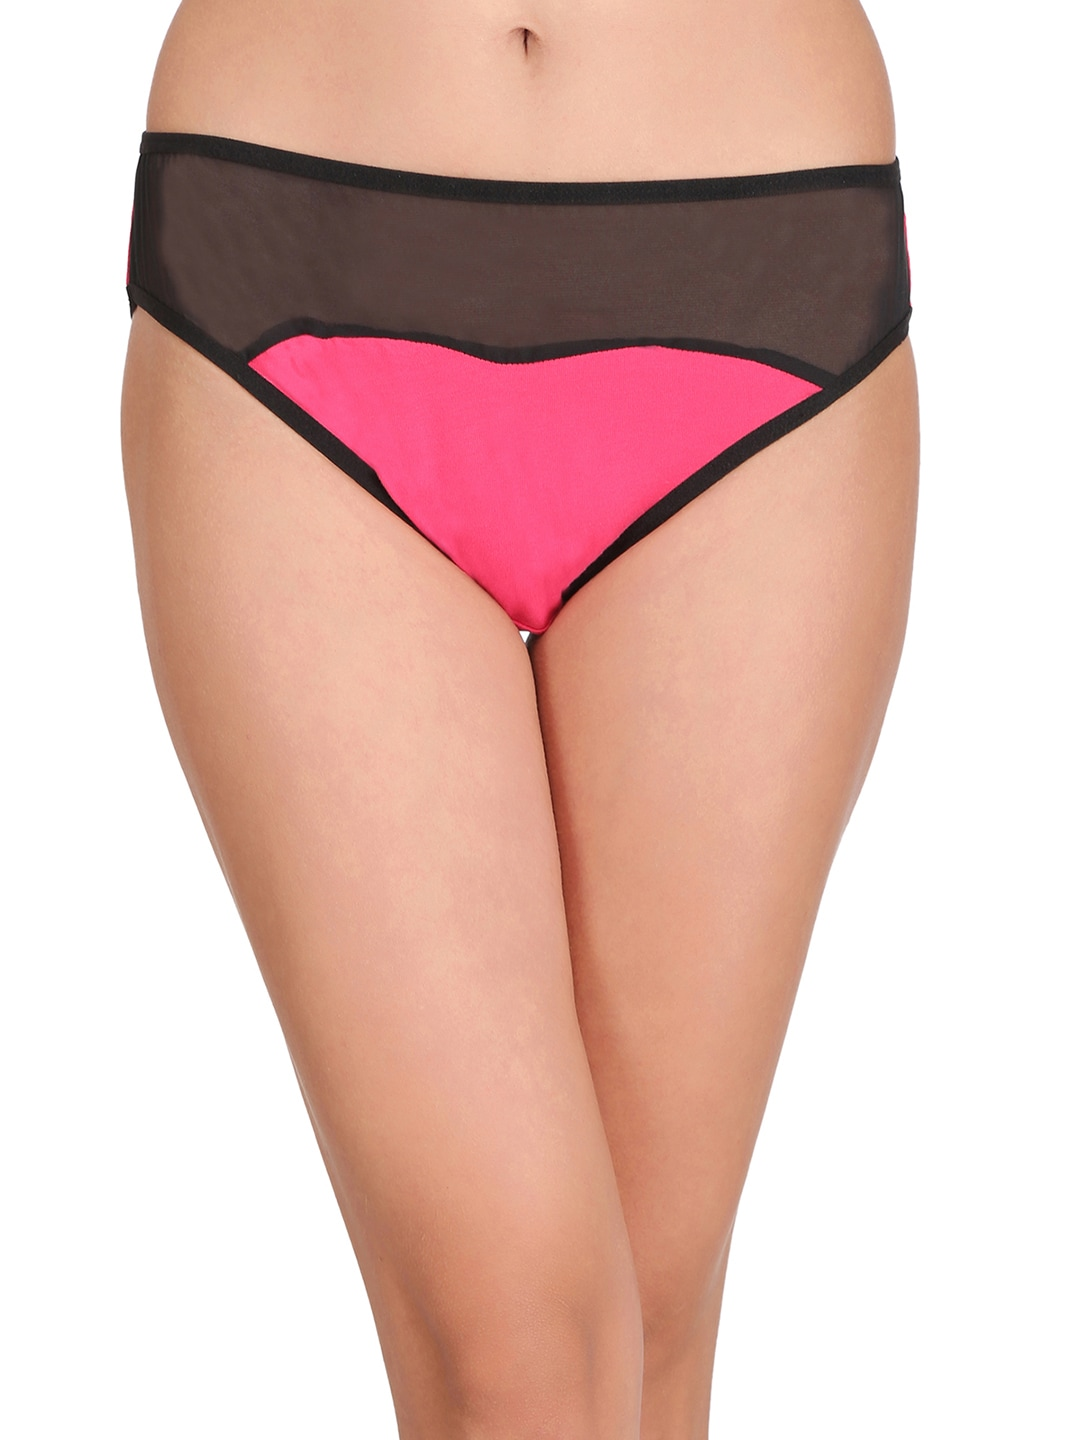 Clovia Women Pink And Black Bikini Briefs PN2016P14 image